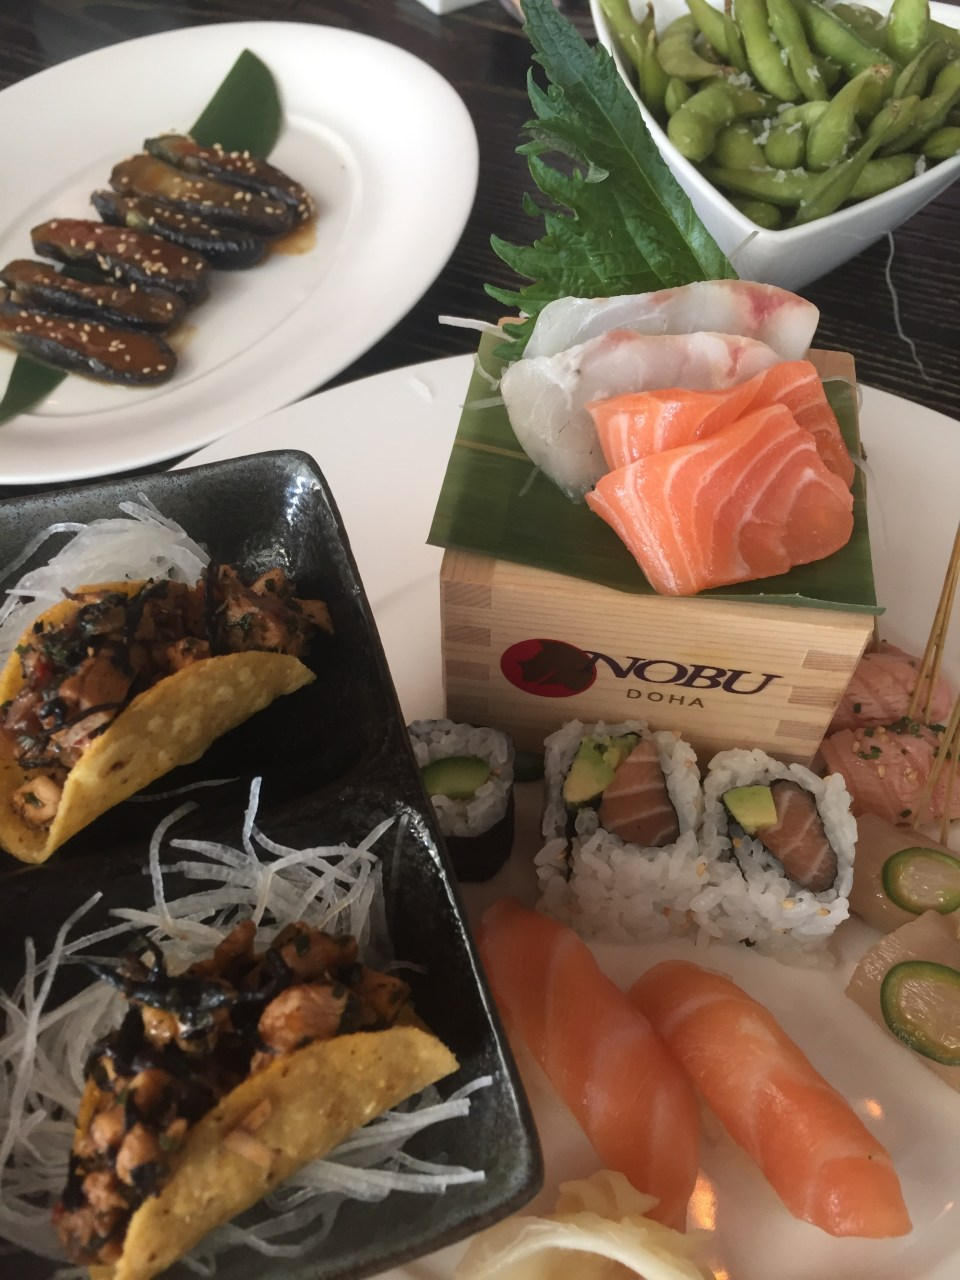 Nobu doha food blog